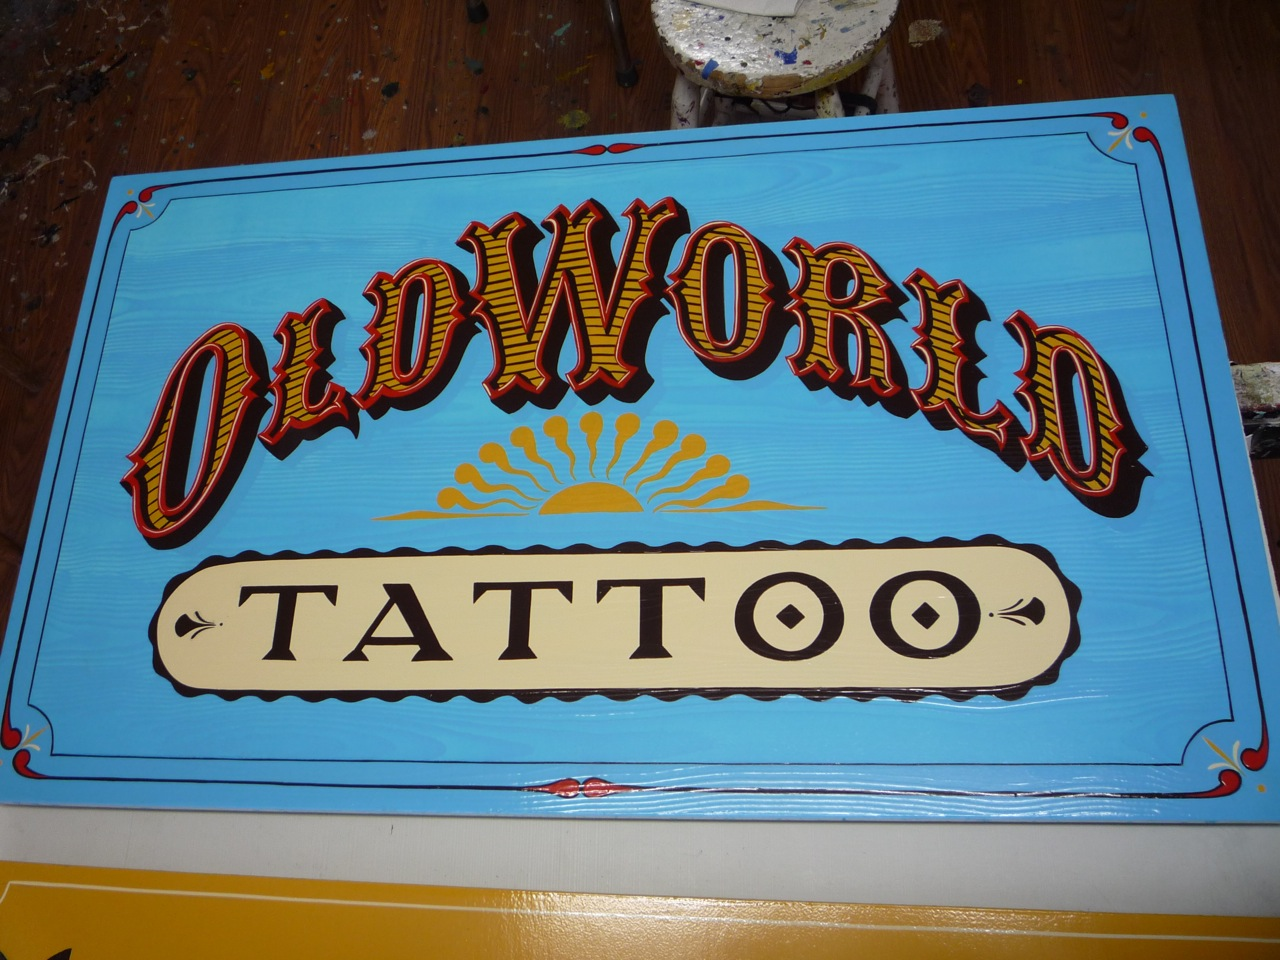 HAND-old-world-tattoo-fancy_4844777250_o.jpg